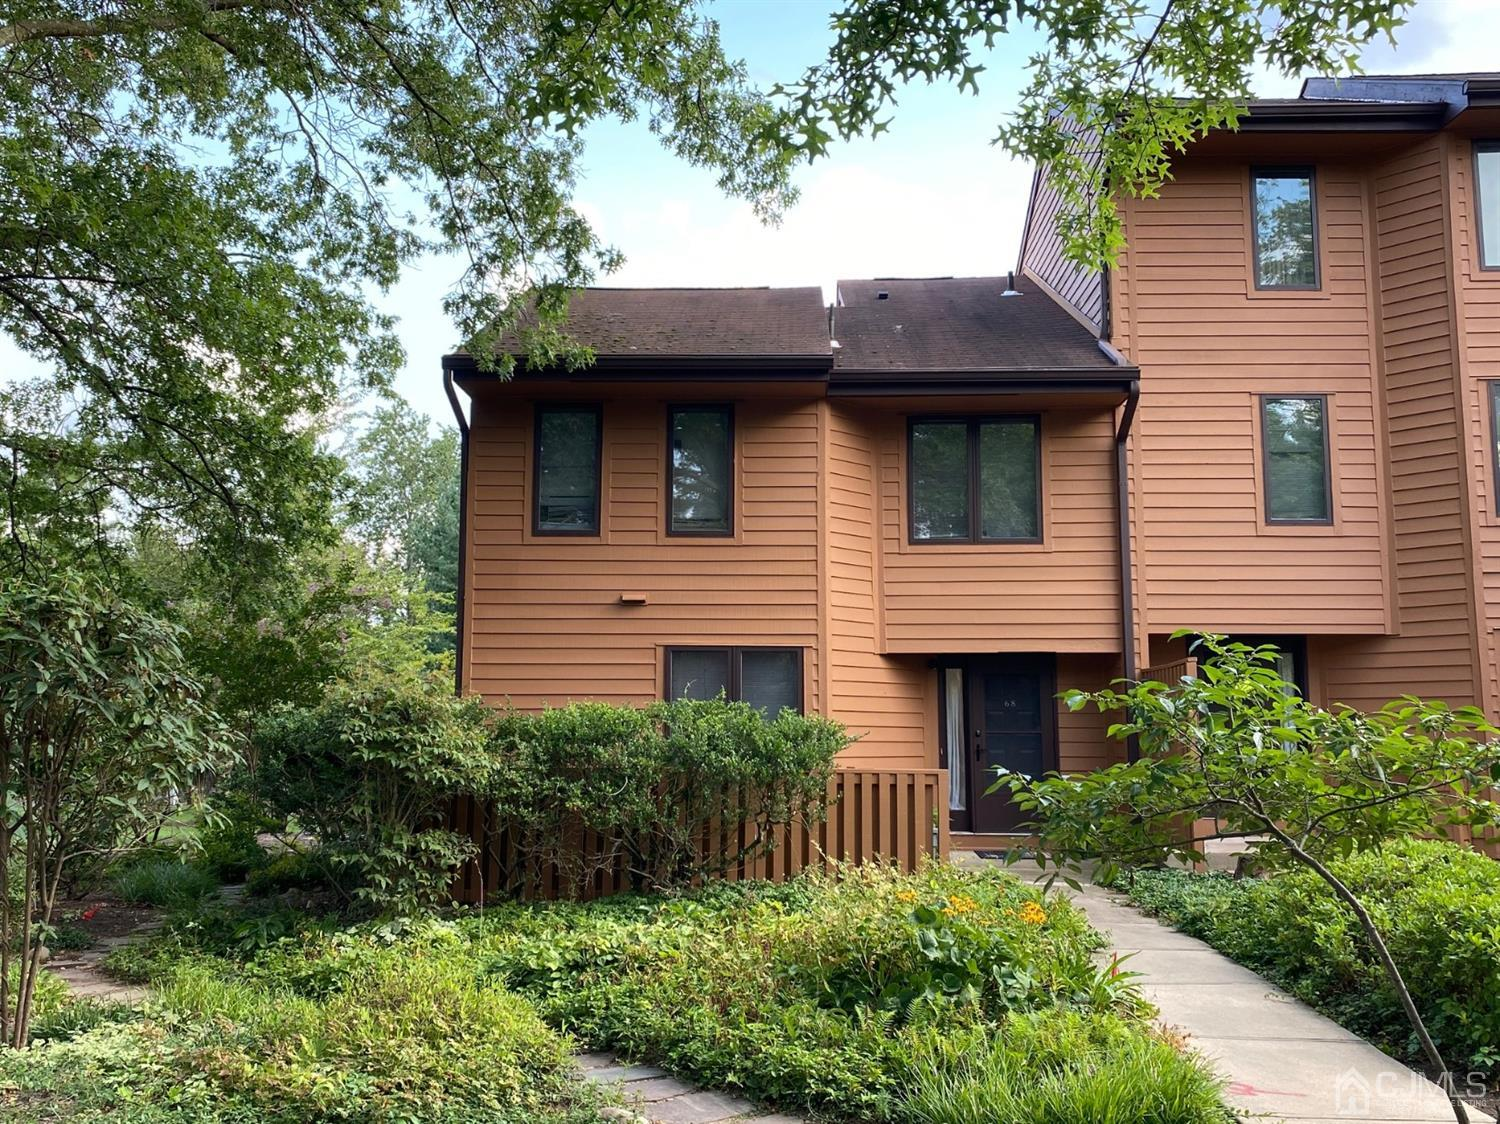 townhouses for Sale at Plainsboro, New Jersey 08540 United States